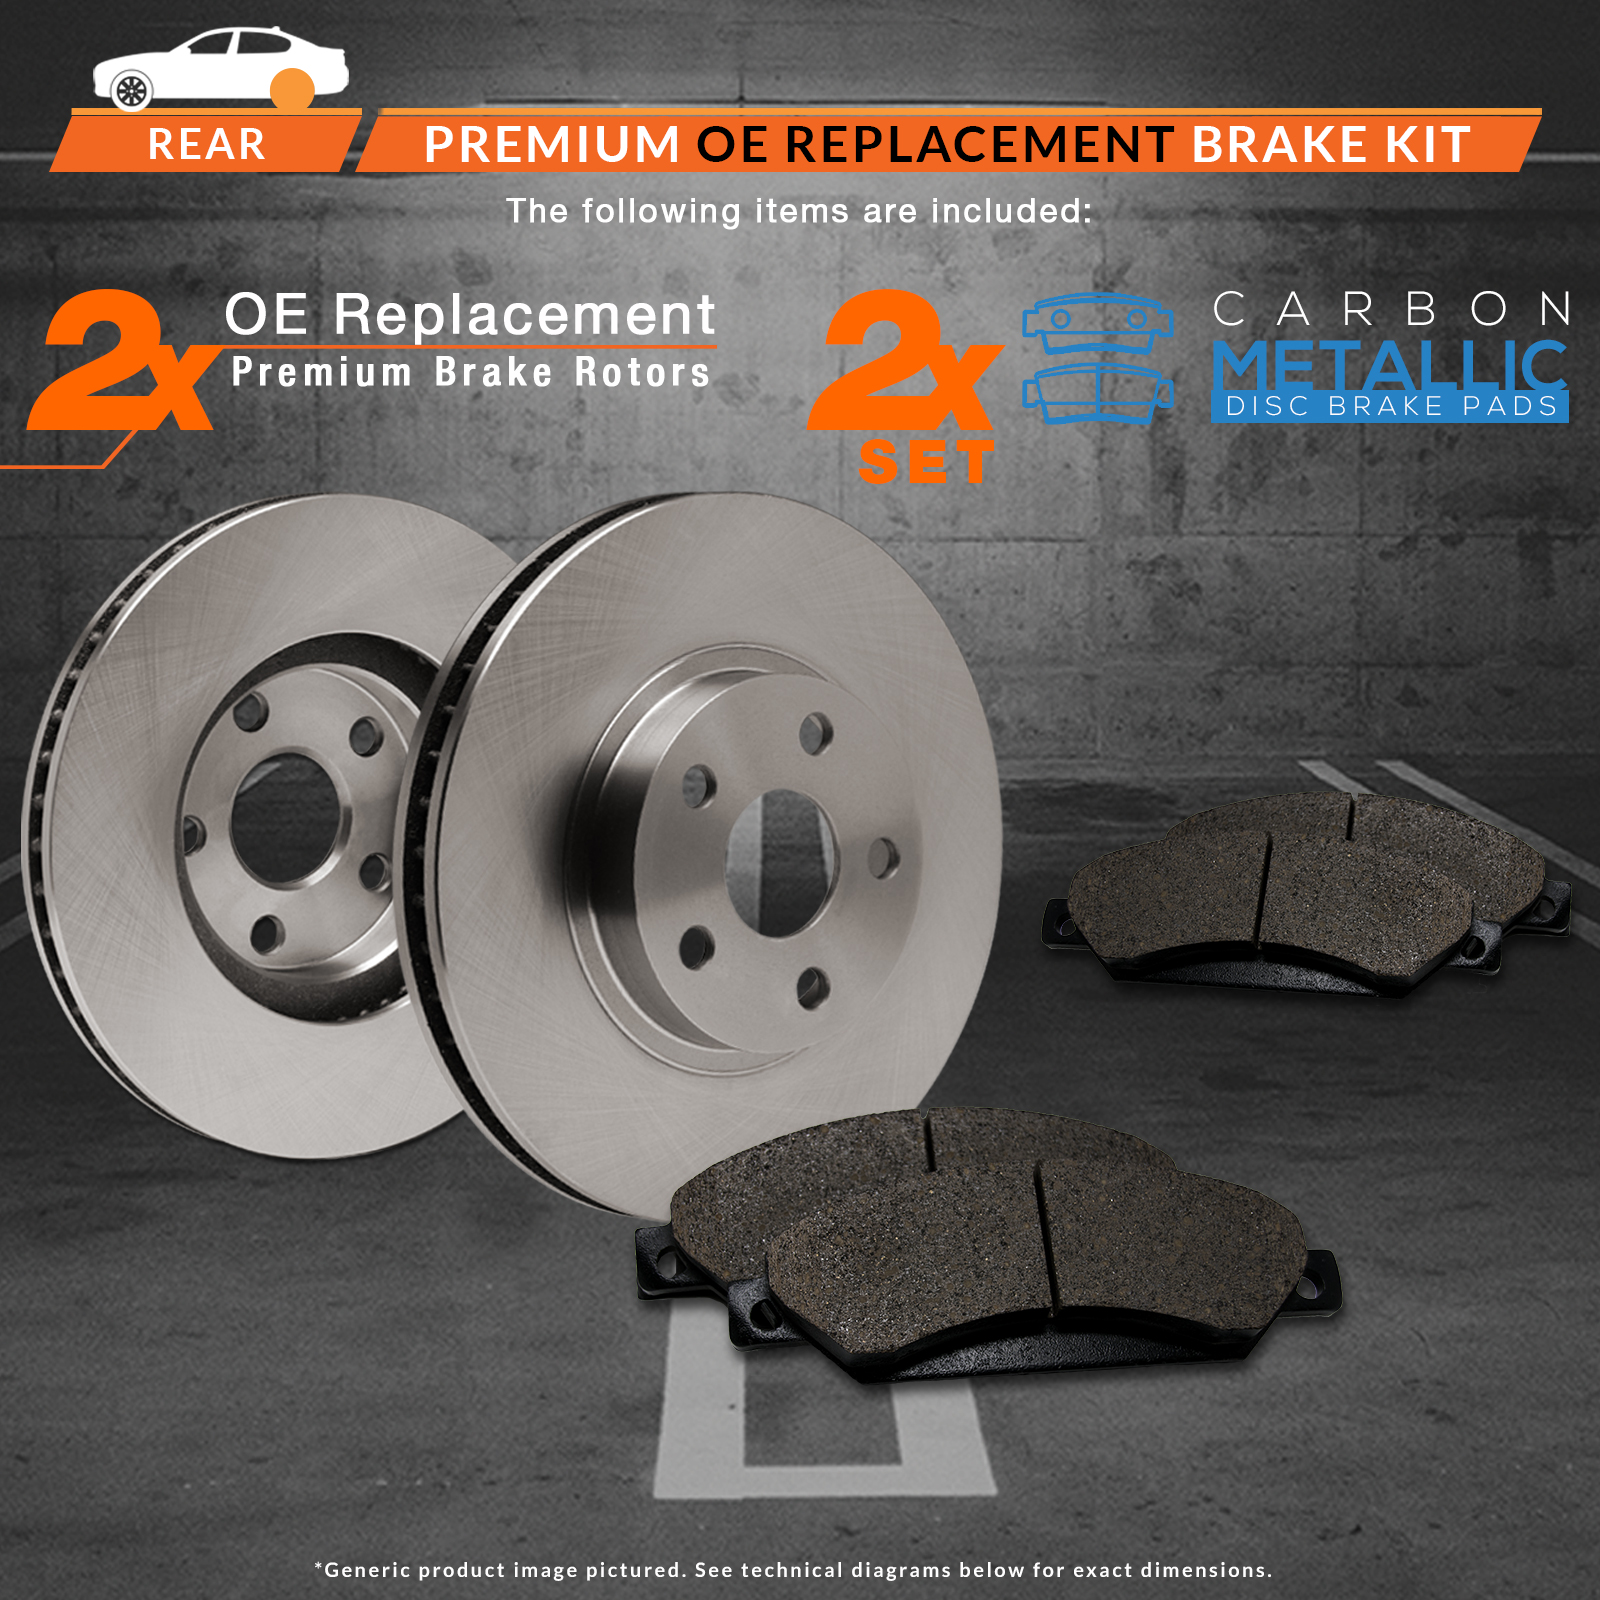 2006-Chevy-Uplander-FWD-OE-Replacement-Rotors-w-Metallic-Pads-R miniature 2